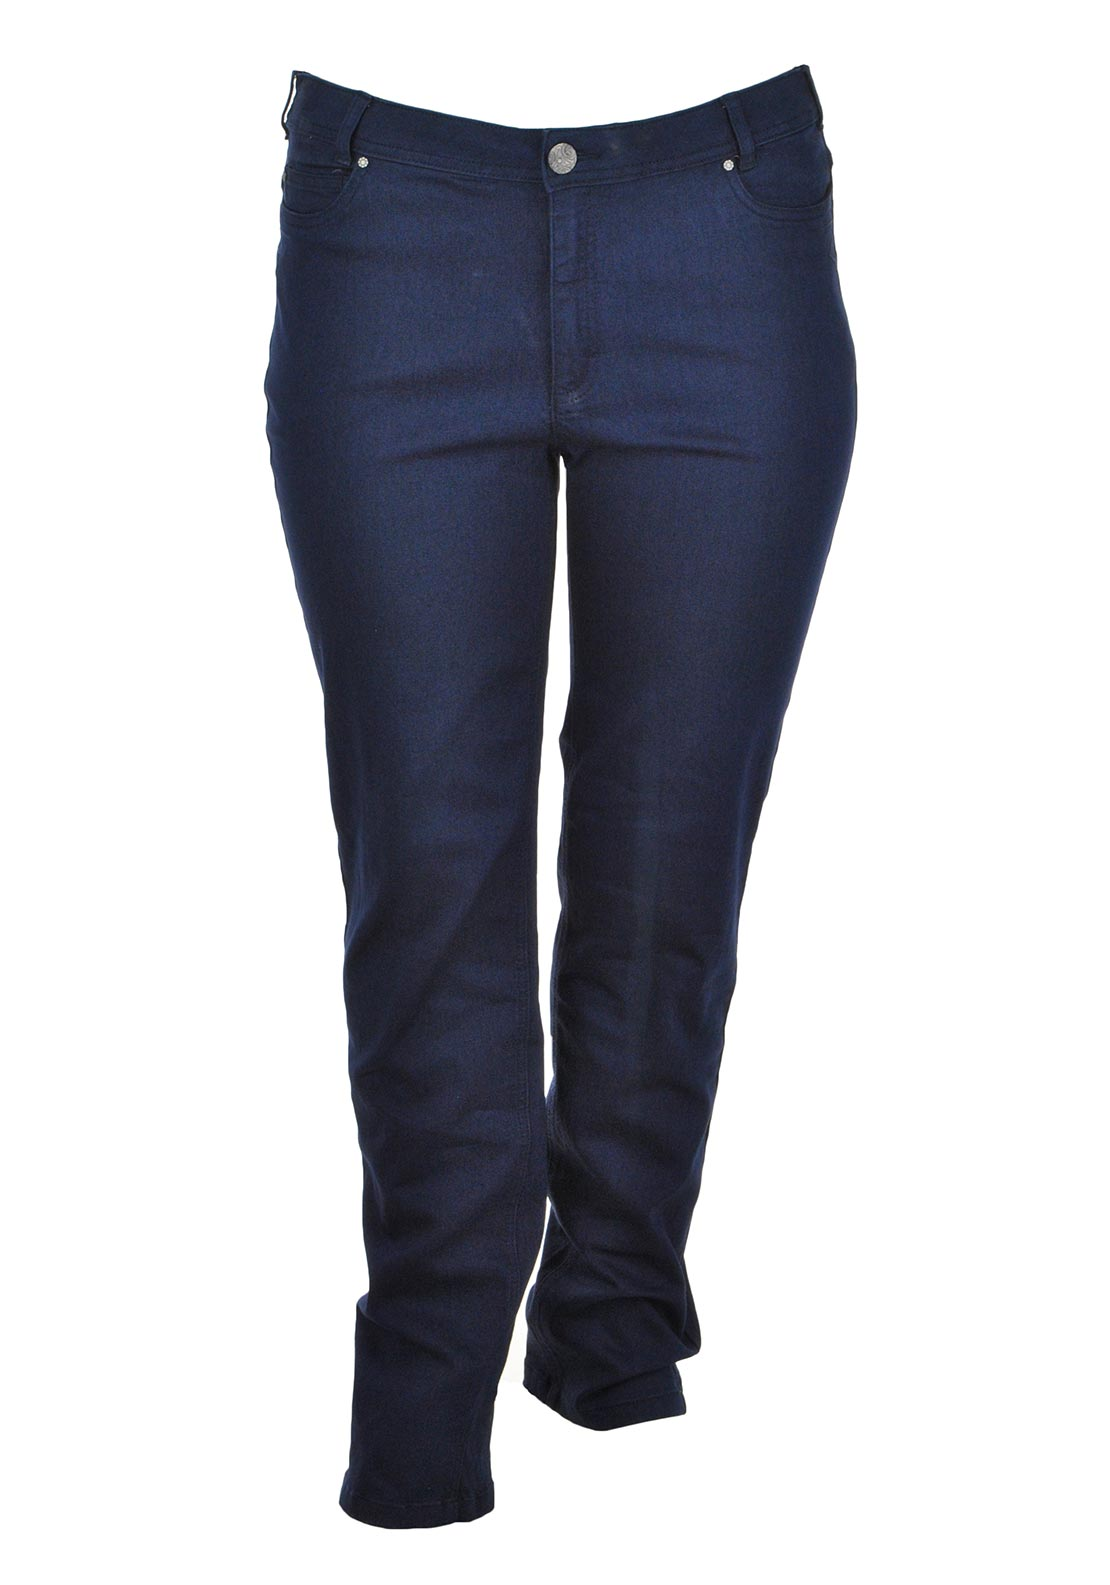 Ciso Straight Leg Jeans, Navy Denim